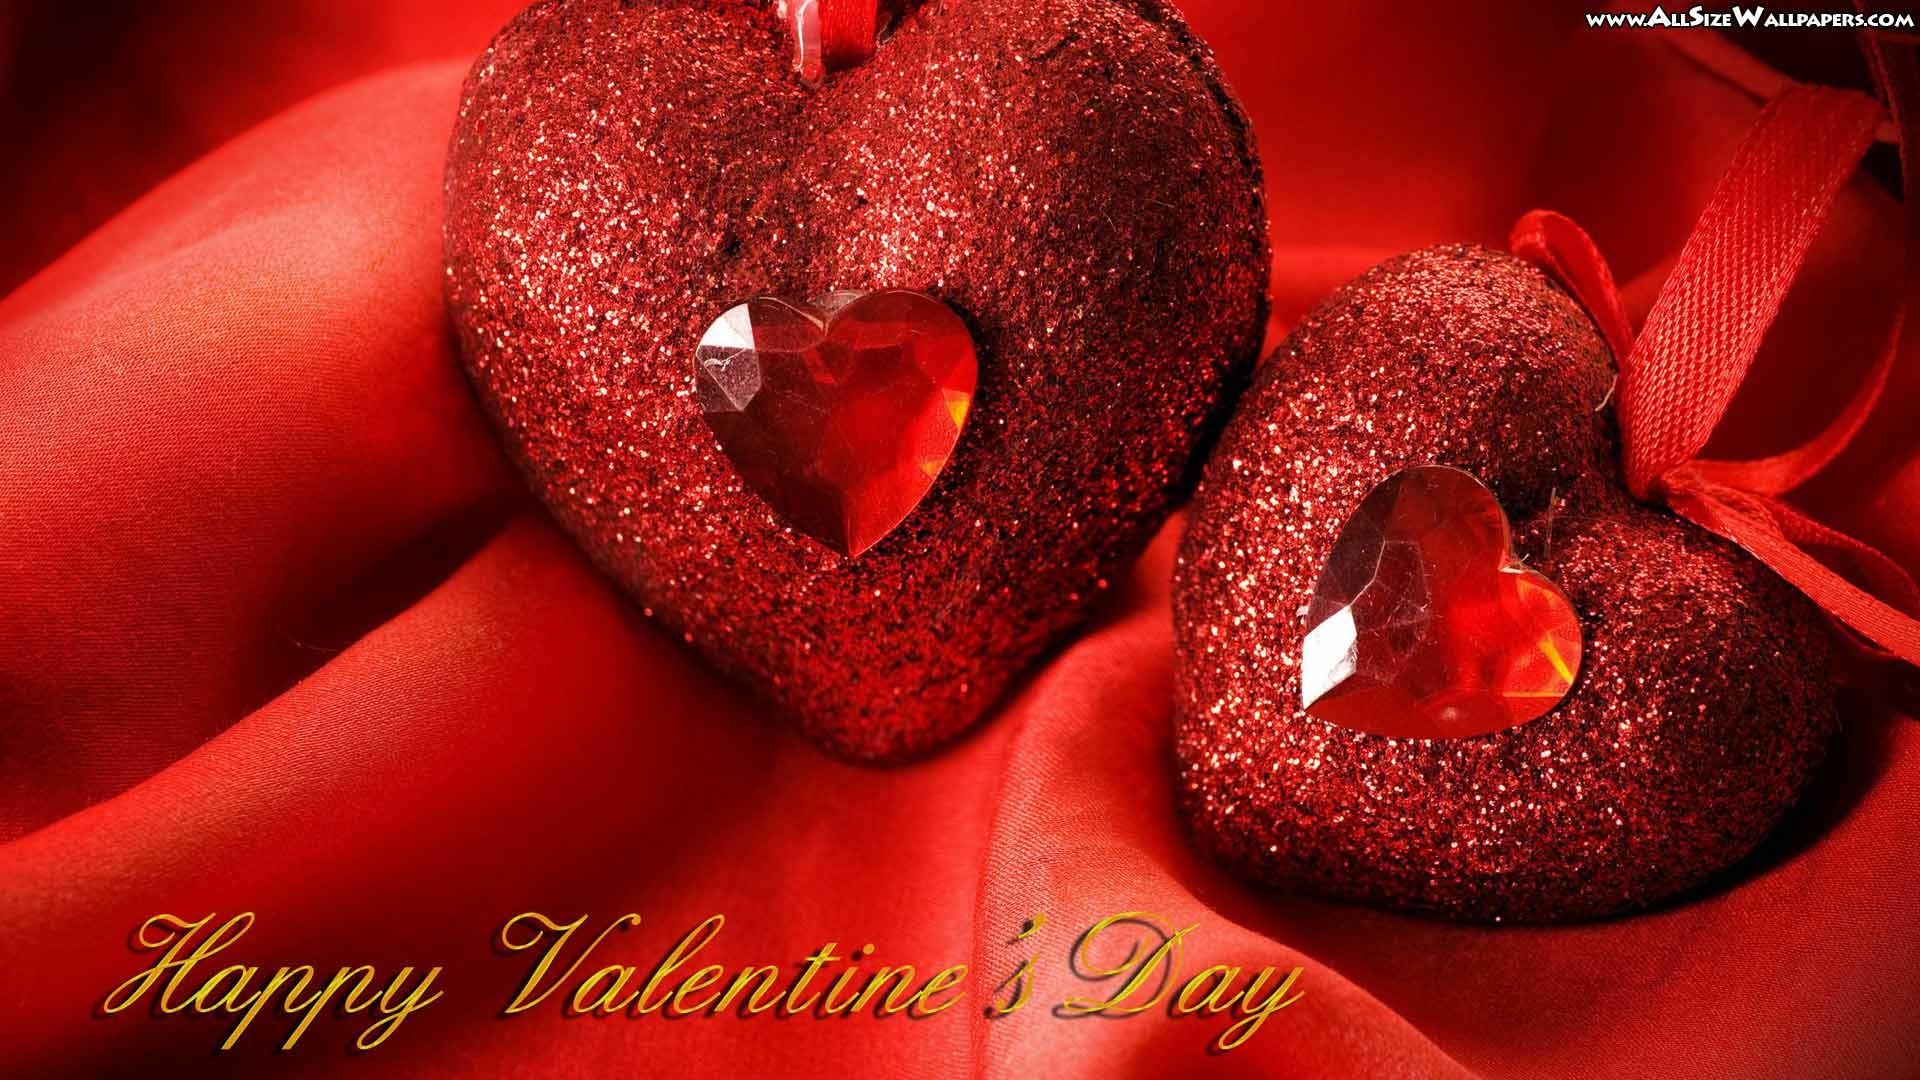 beautiful valentine wallpapers (4) – High Quality Photos